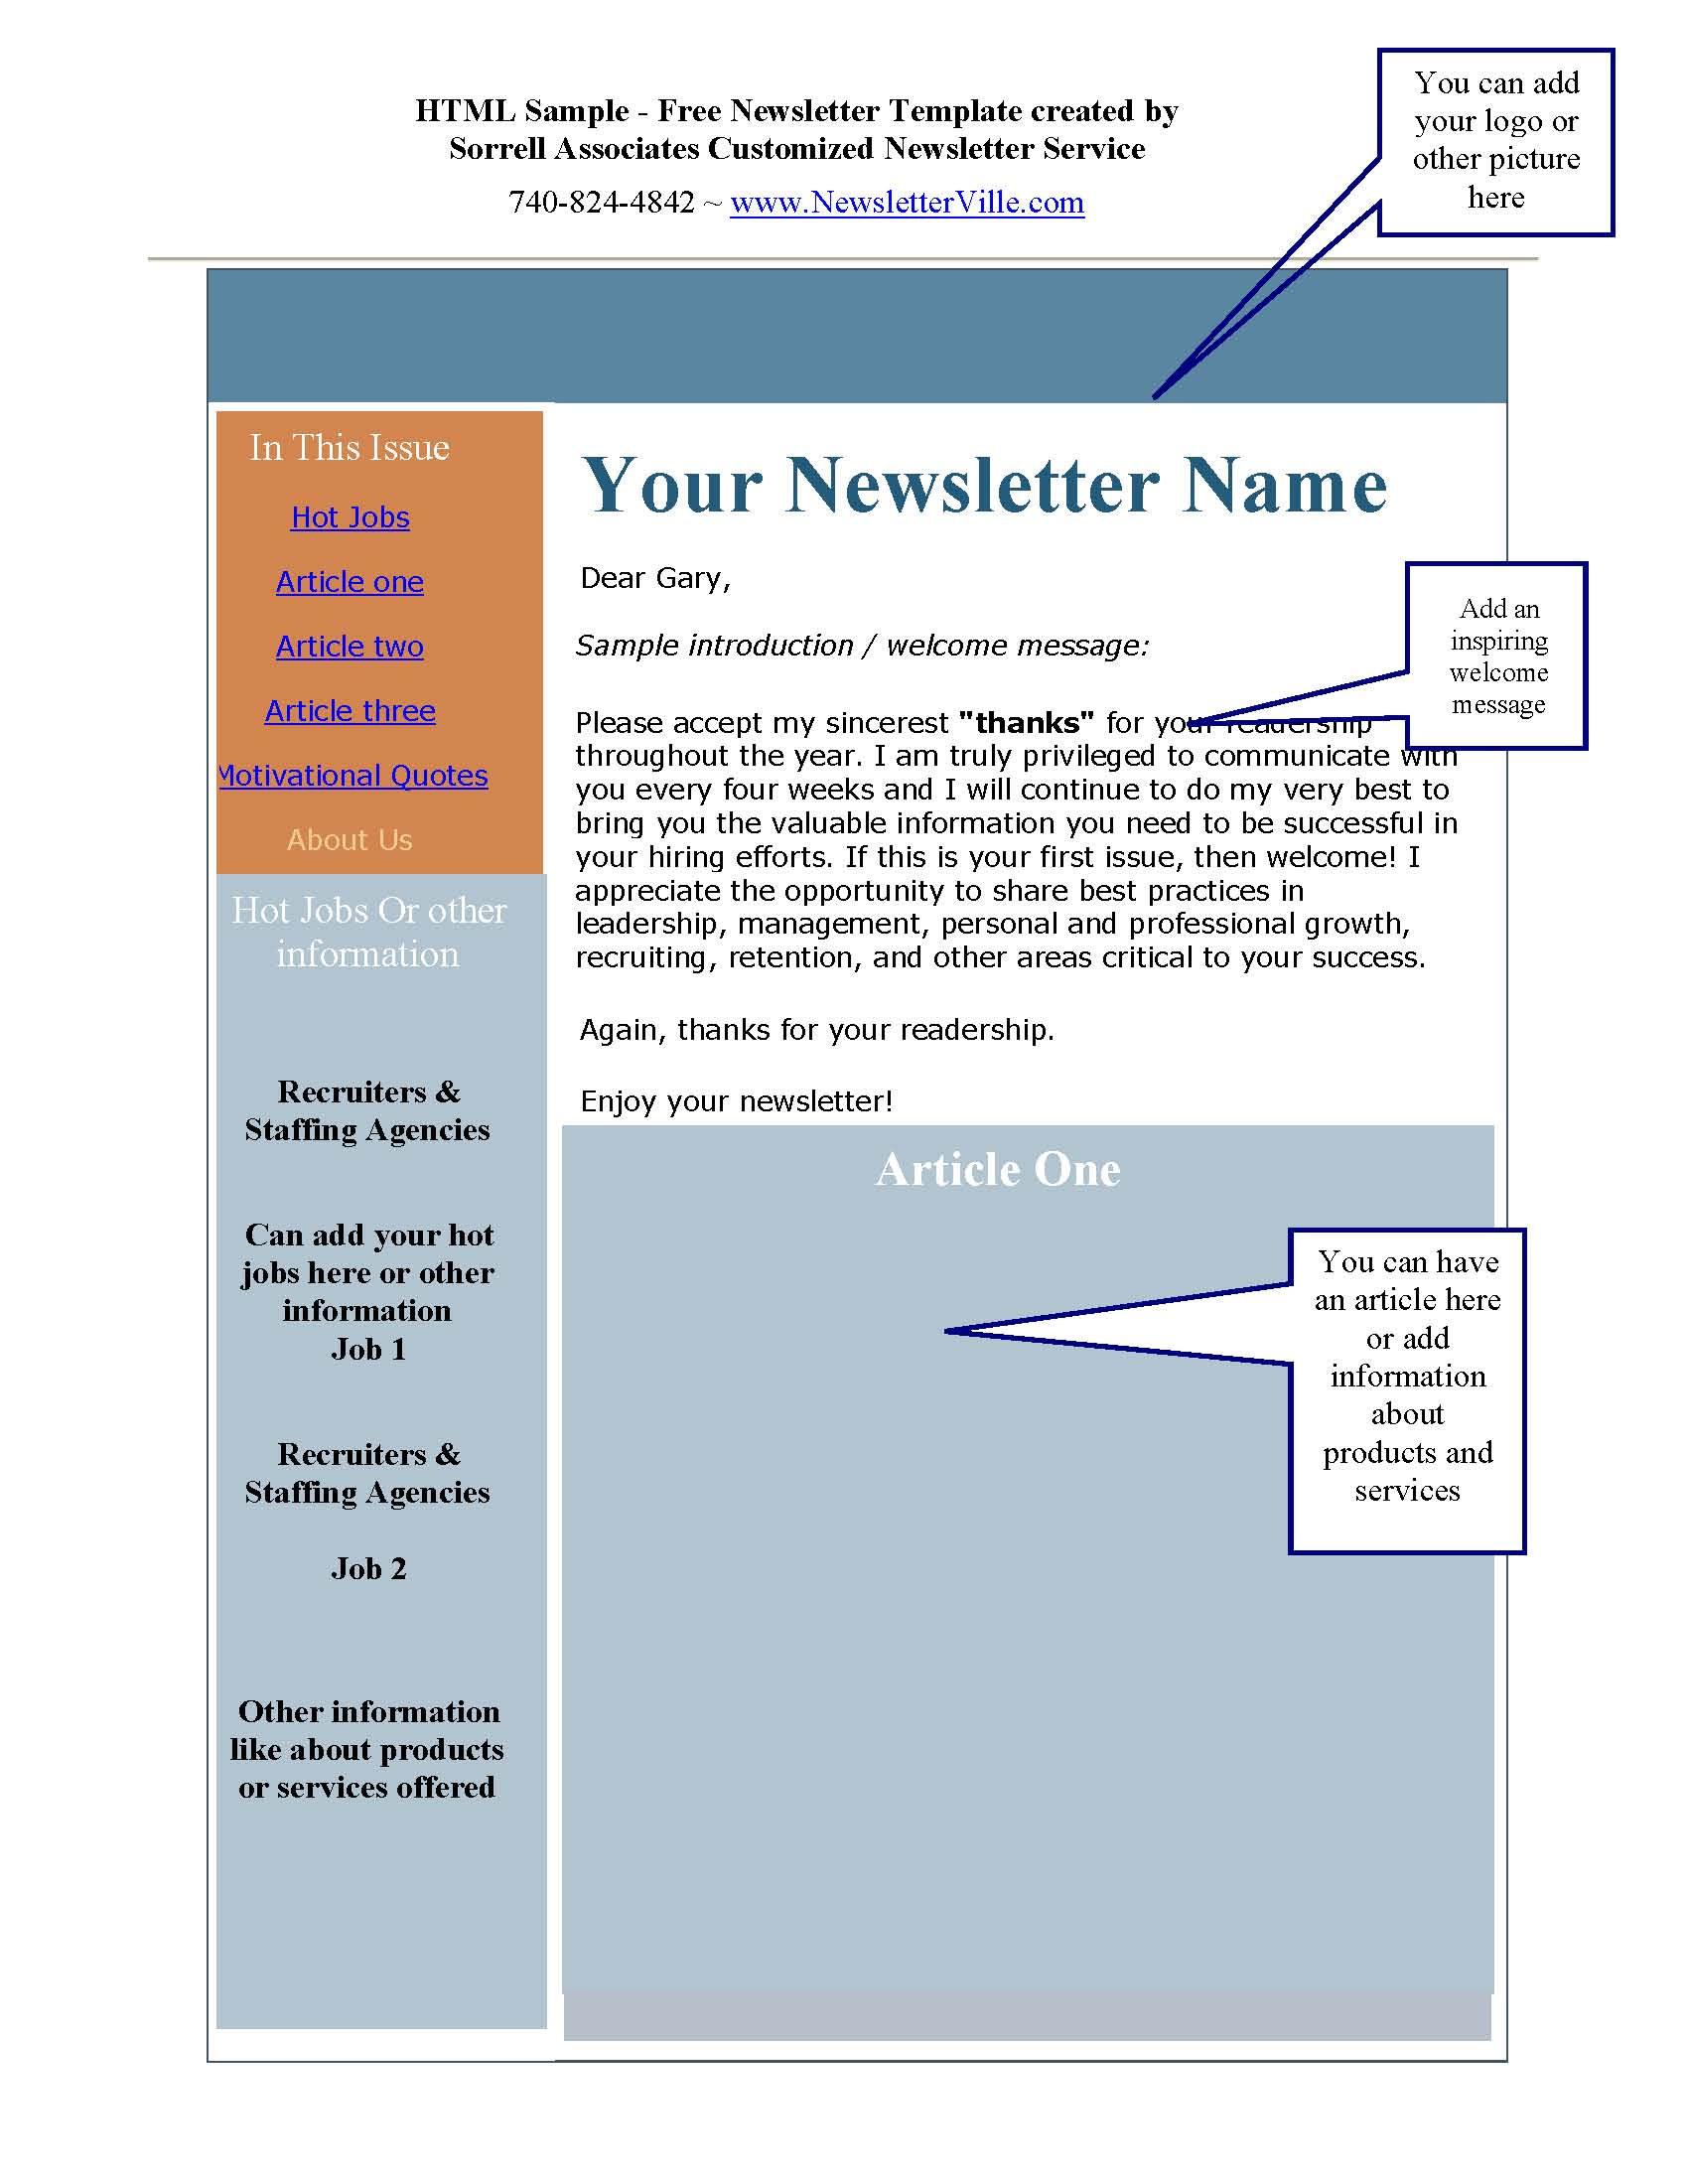 Newsletter Blog Articles Provided Plus Free Newsletter Design - How to make a newsletter template